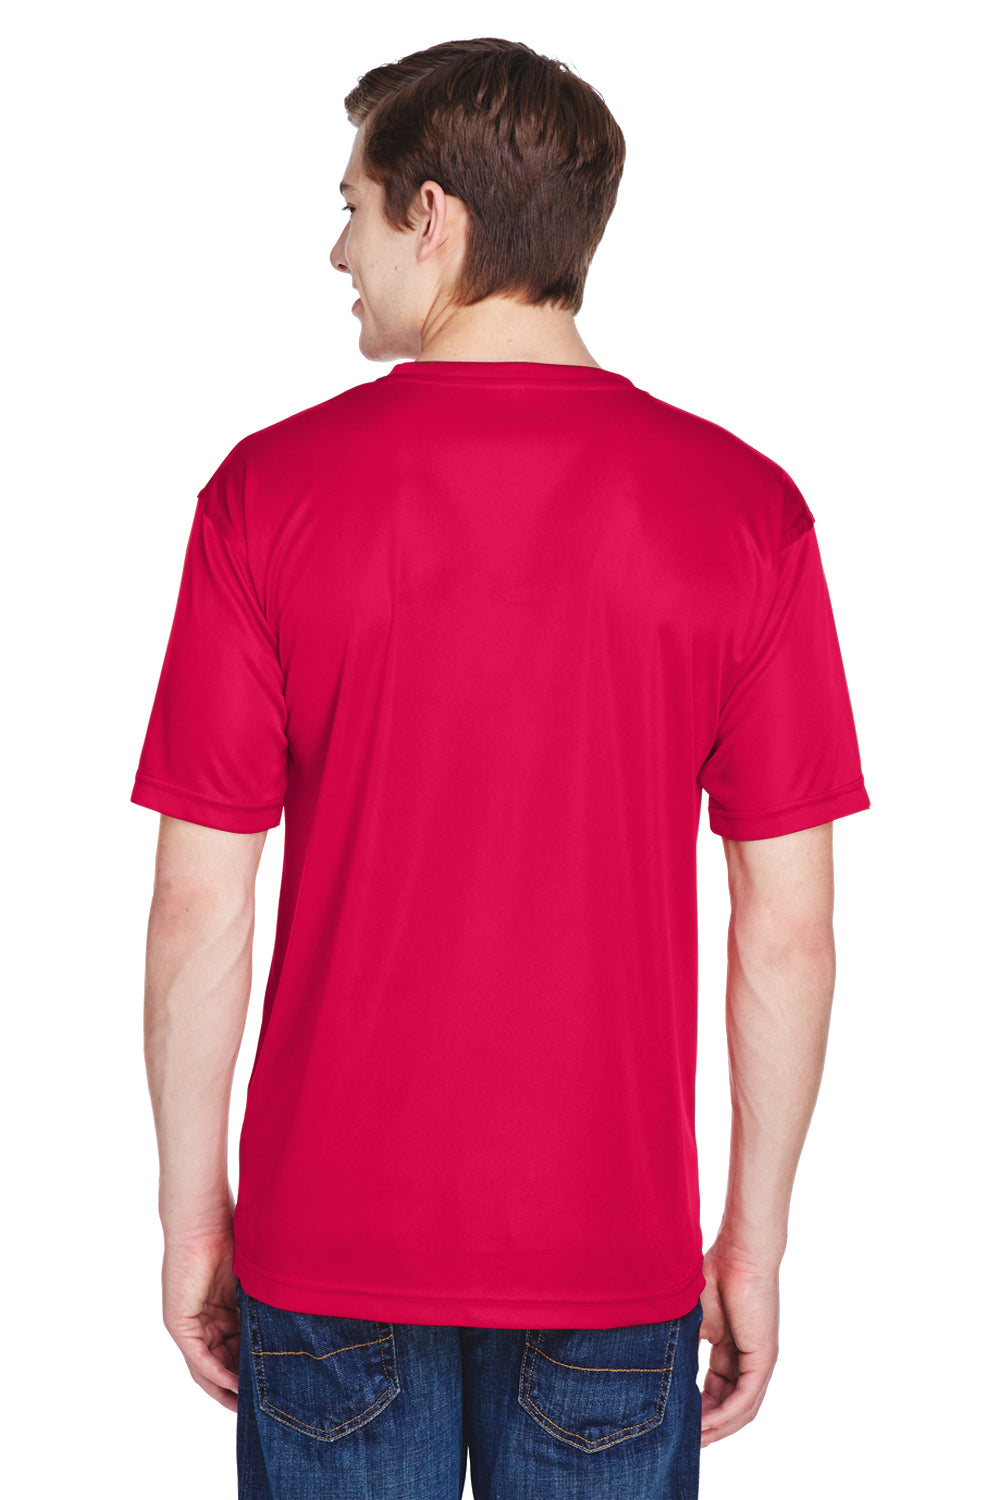 UltraClub 8620 Mens Cool & Dry Performance Moisture Wicking Short Sleeve Crewneck T-Shirt Red Back